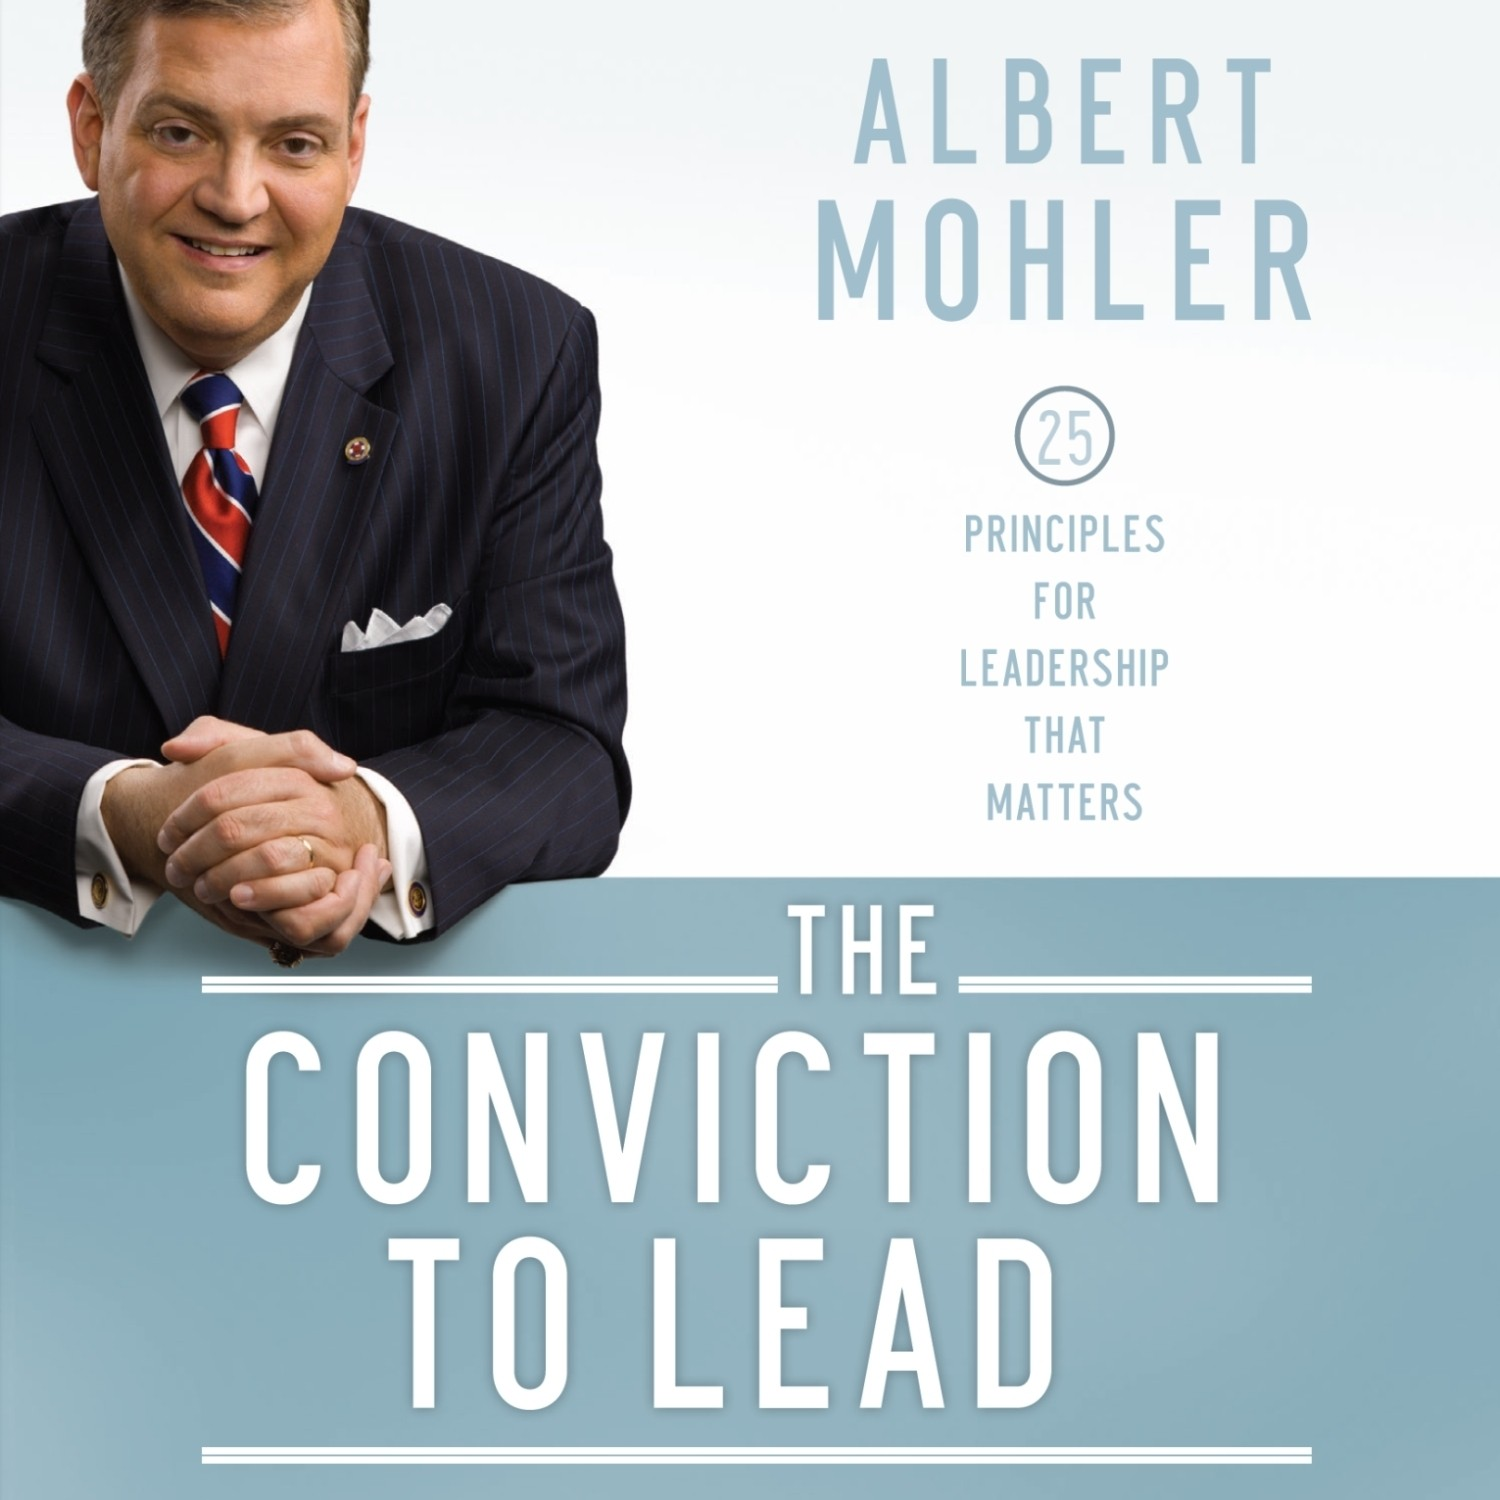 Printable The Conviction to Lead: 25 Principles for Leadership That Matters Audiobook Cover Art